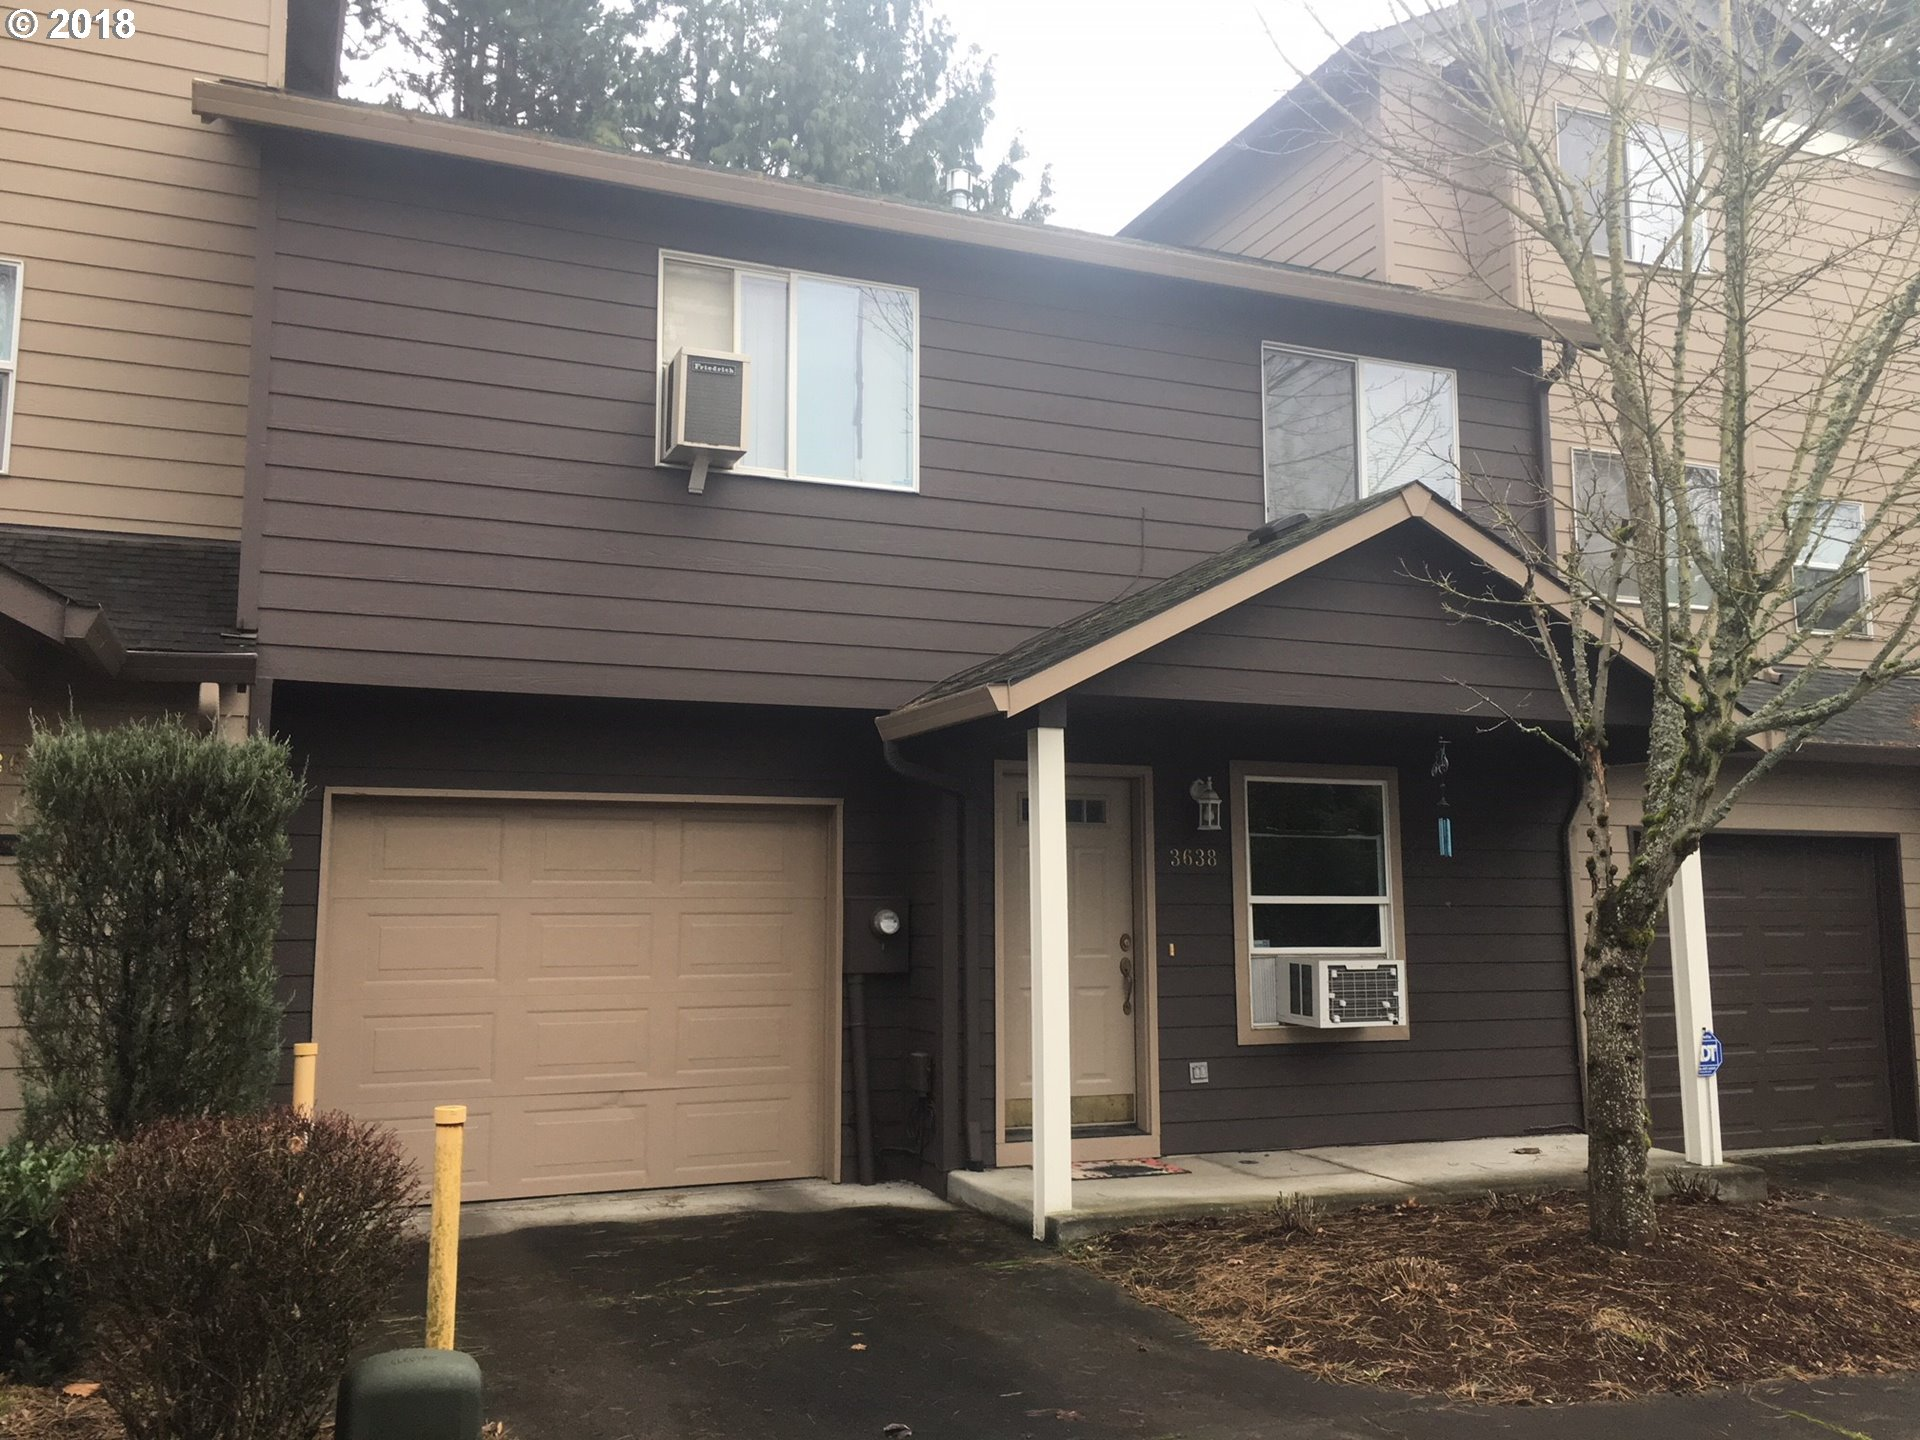 Photo for 3638 NE 158TH AVE, Portland, OR 97230 (MLS # 17576882)